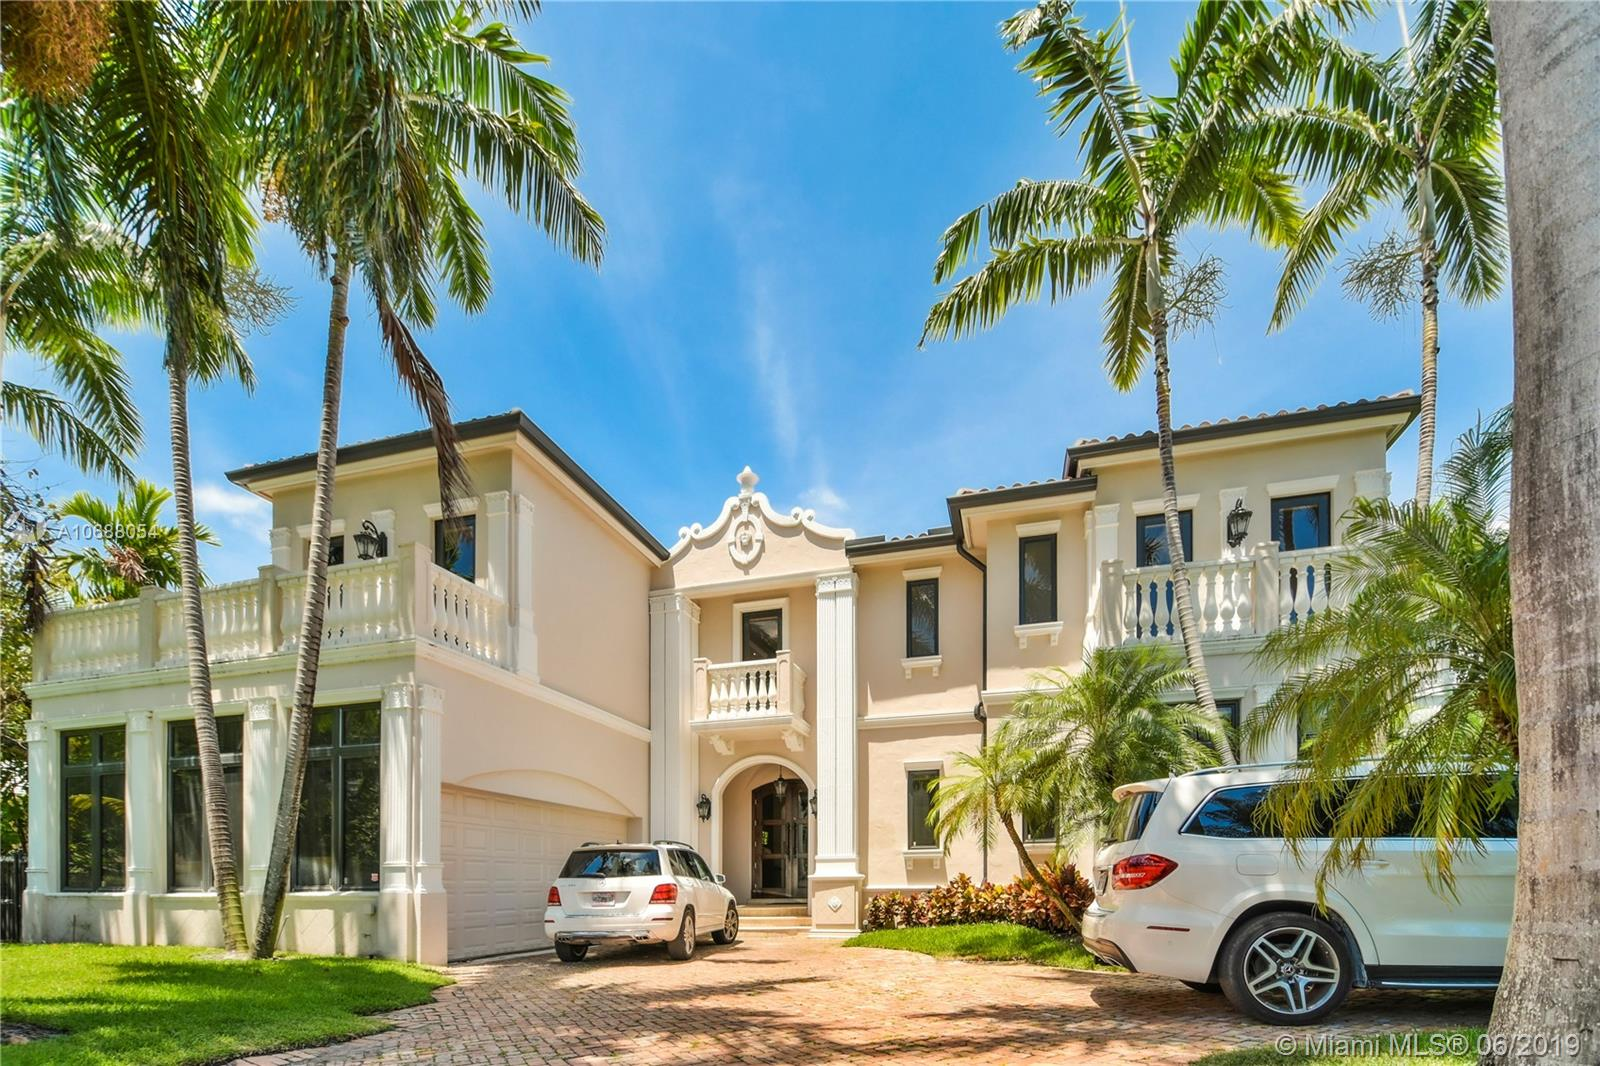 Stunning Mediterranean single family home in exclusive Bal Harbour Village. This impeccable home 6 bed plus maid 6.5 bath 6,279 sq ft  has been custom designed with only the finest finishes. Fabulous covered terrace with summer kitchen , oversized heated pool with salt water , hot-tub, cabana bathroom,  large 2 car garage and elevator. Neighborhood marina has boat slips available. Walk to A+ school, beaches, parks, marina, places of worship & world renowned Bal Harbour shops.